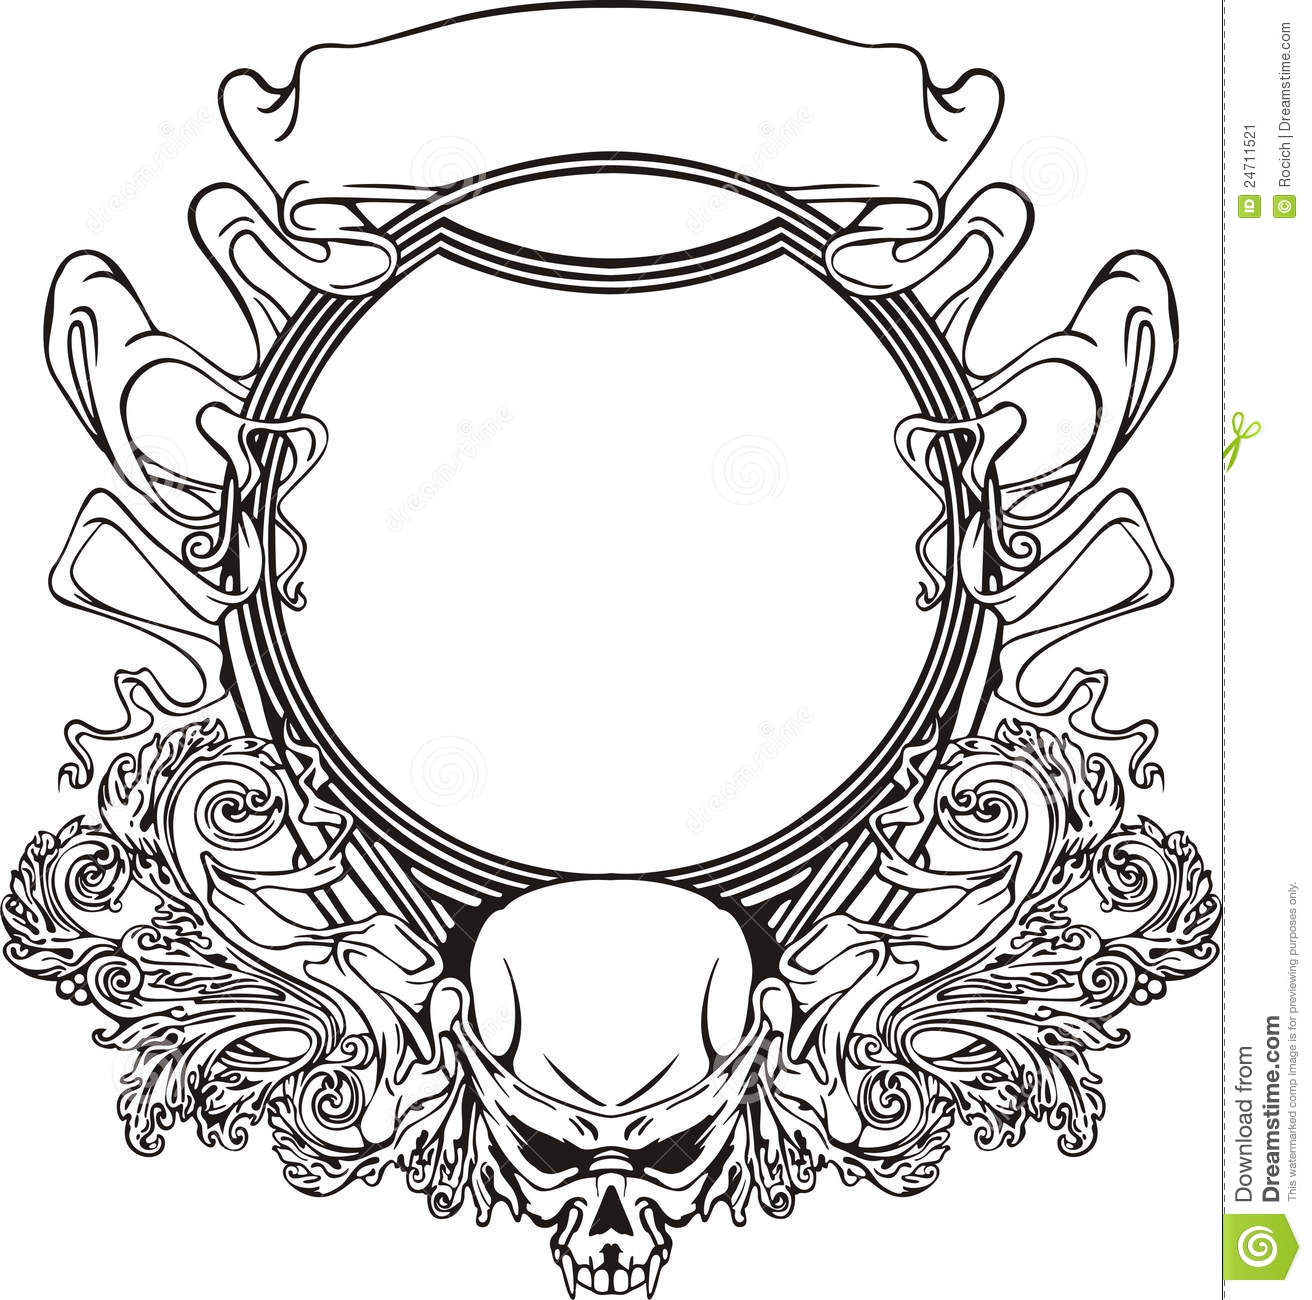 Football Coloring Pages as well Fishing Rod Clipart in addition Volleyball Basics Volleyball 101 furthermore Stock Image Frame Skull Art Nouveau Style Image24711521 moreover Bicycle. on gear clip art border